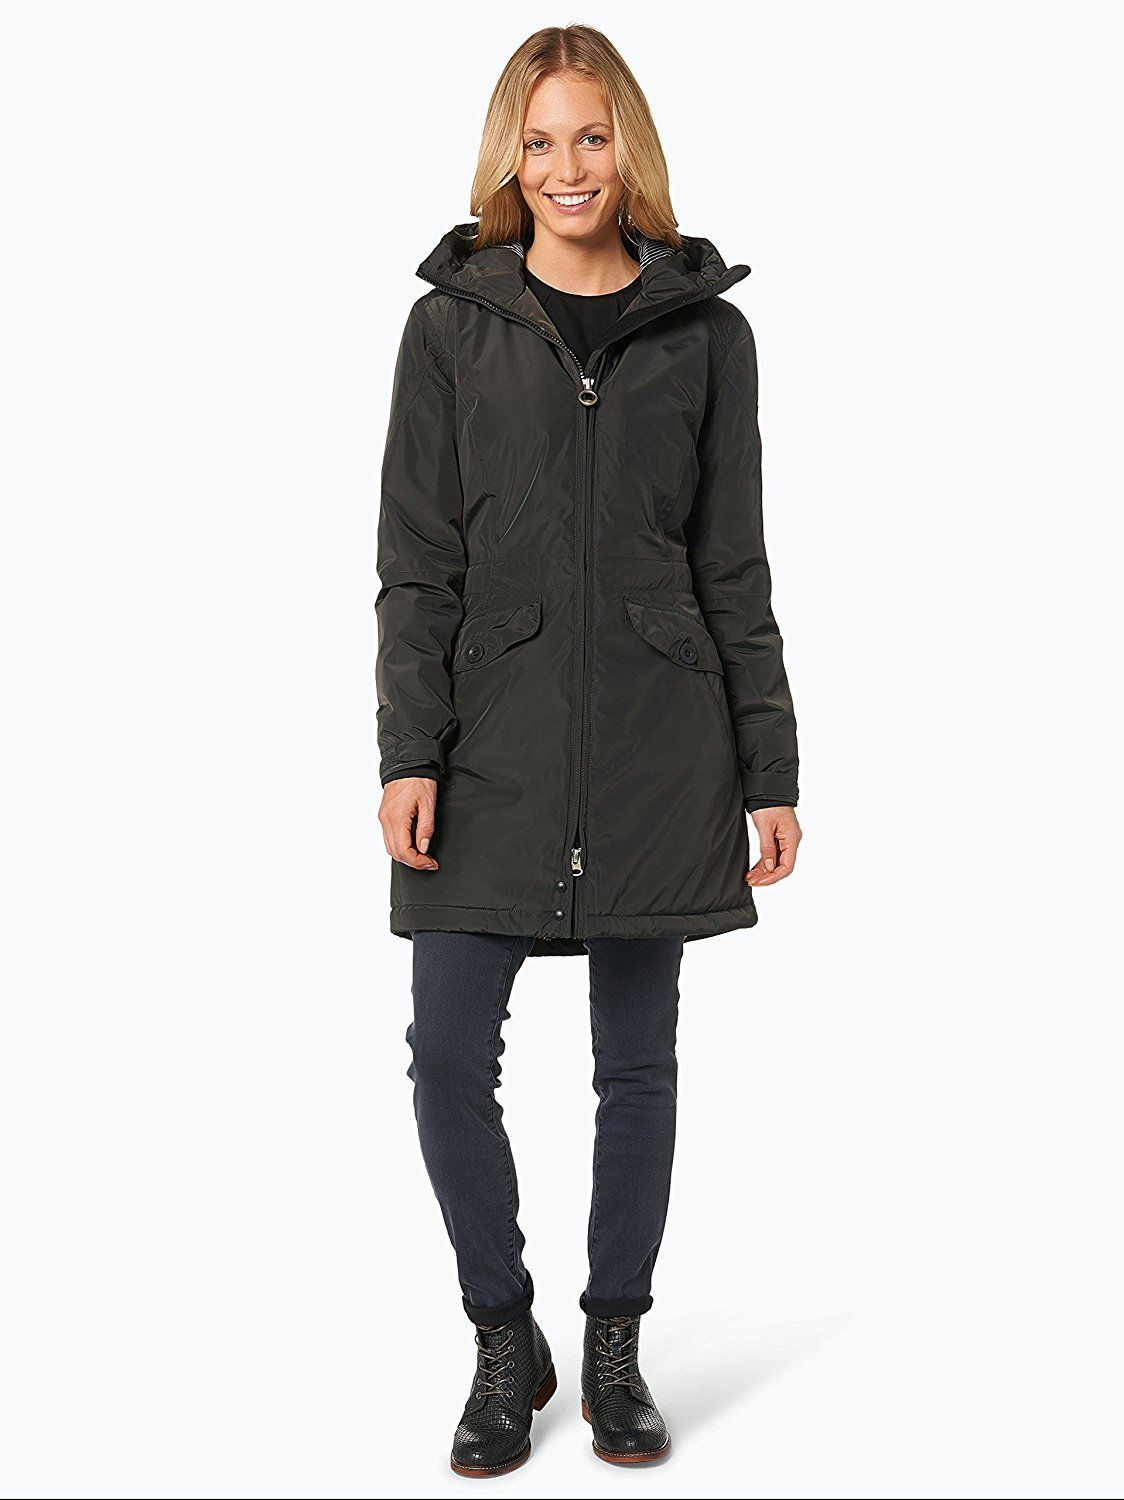 neu wellensteyn cucina winter damen winterjacke parka. Black Bedroom Furniture Sets. Home Design Ideas